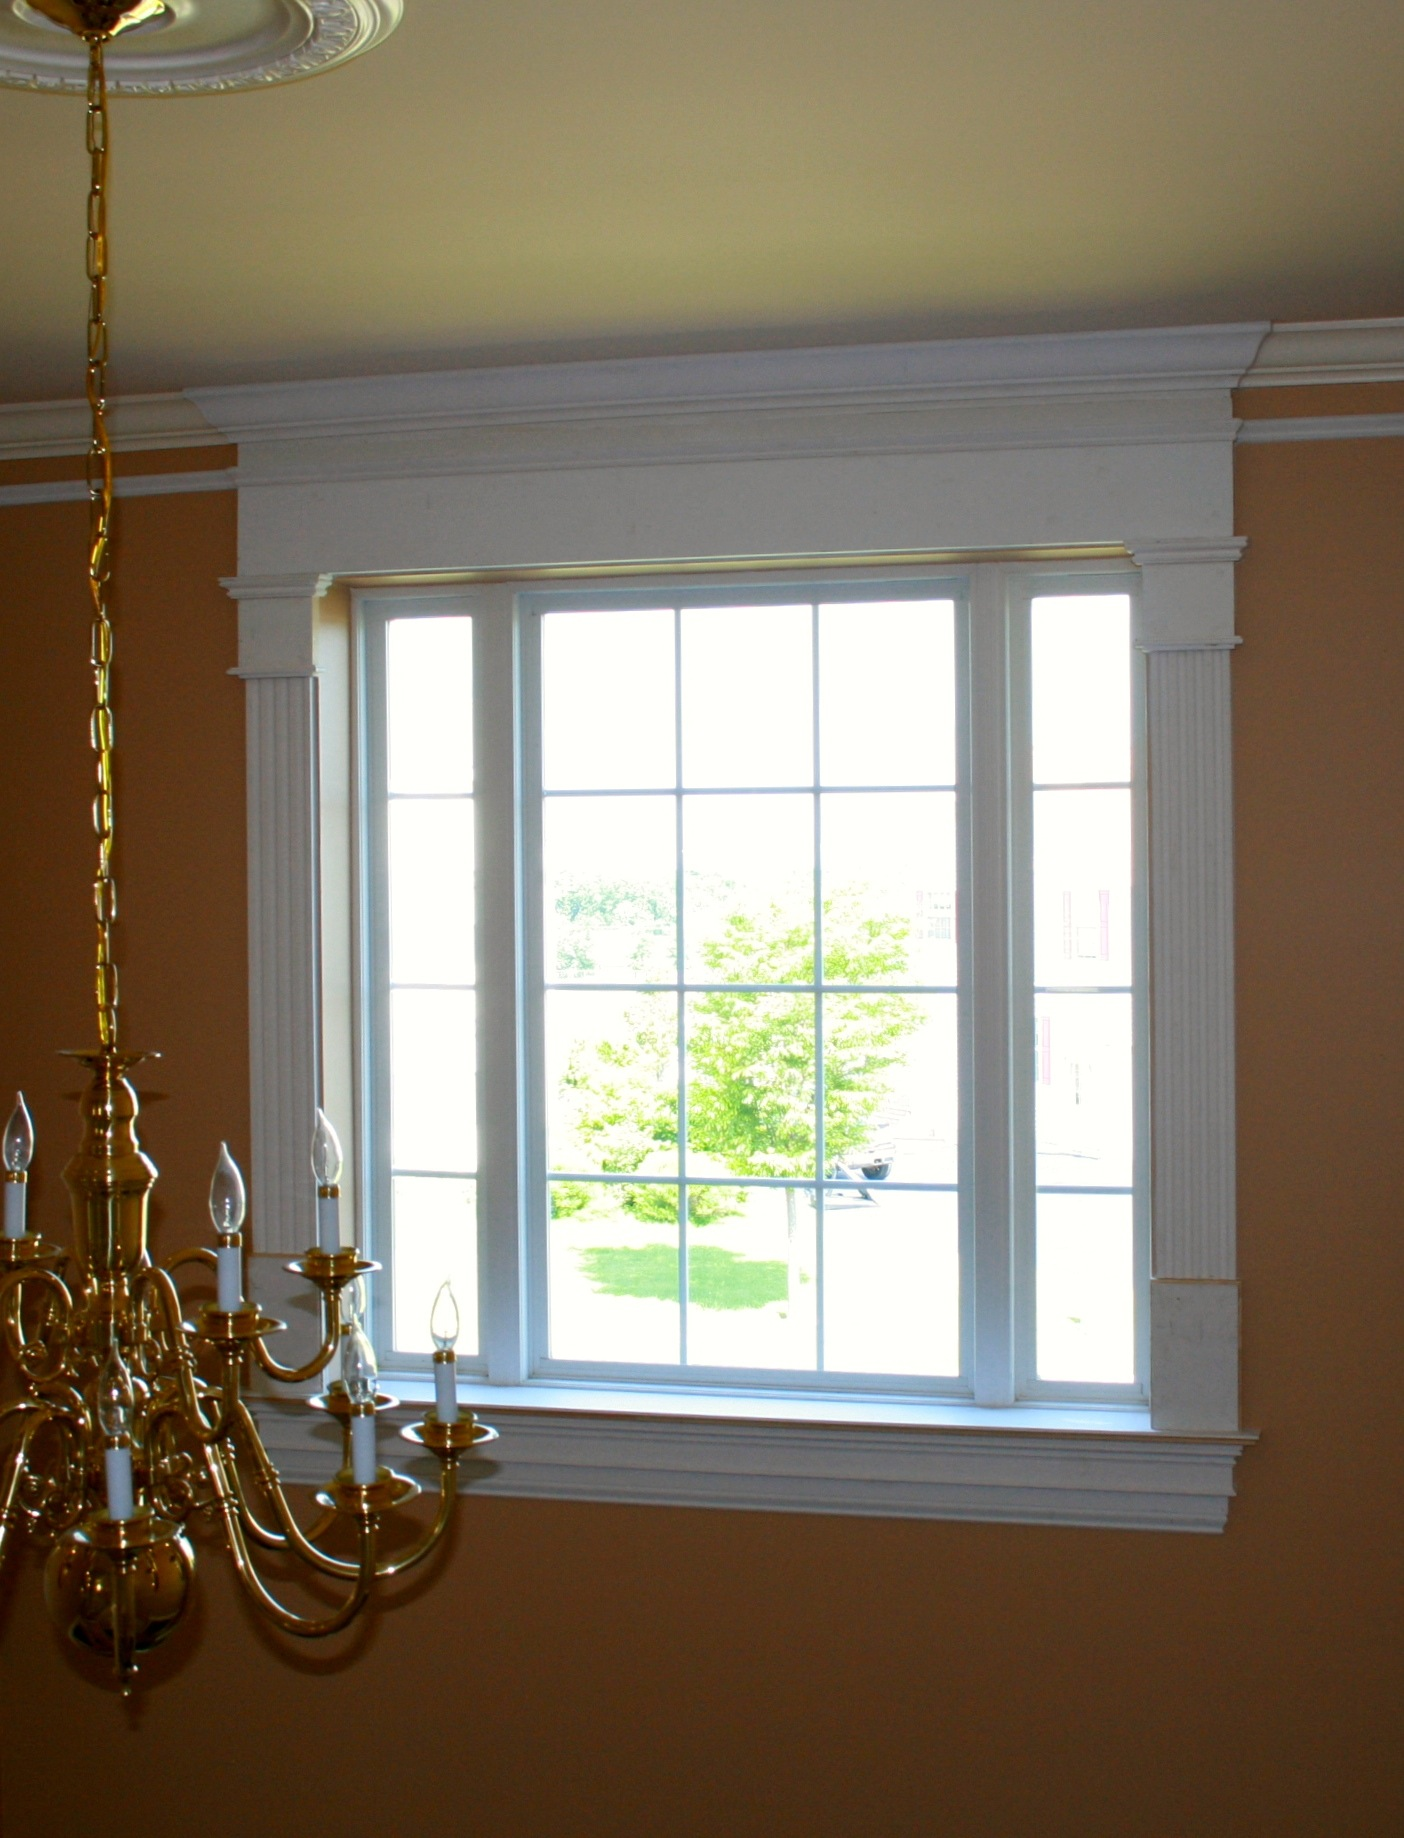 Door Casing And Window Trim Installation By Deacon Home